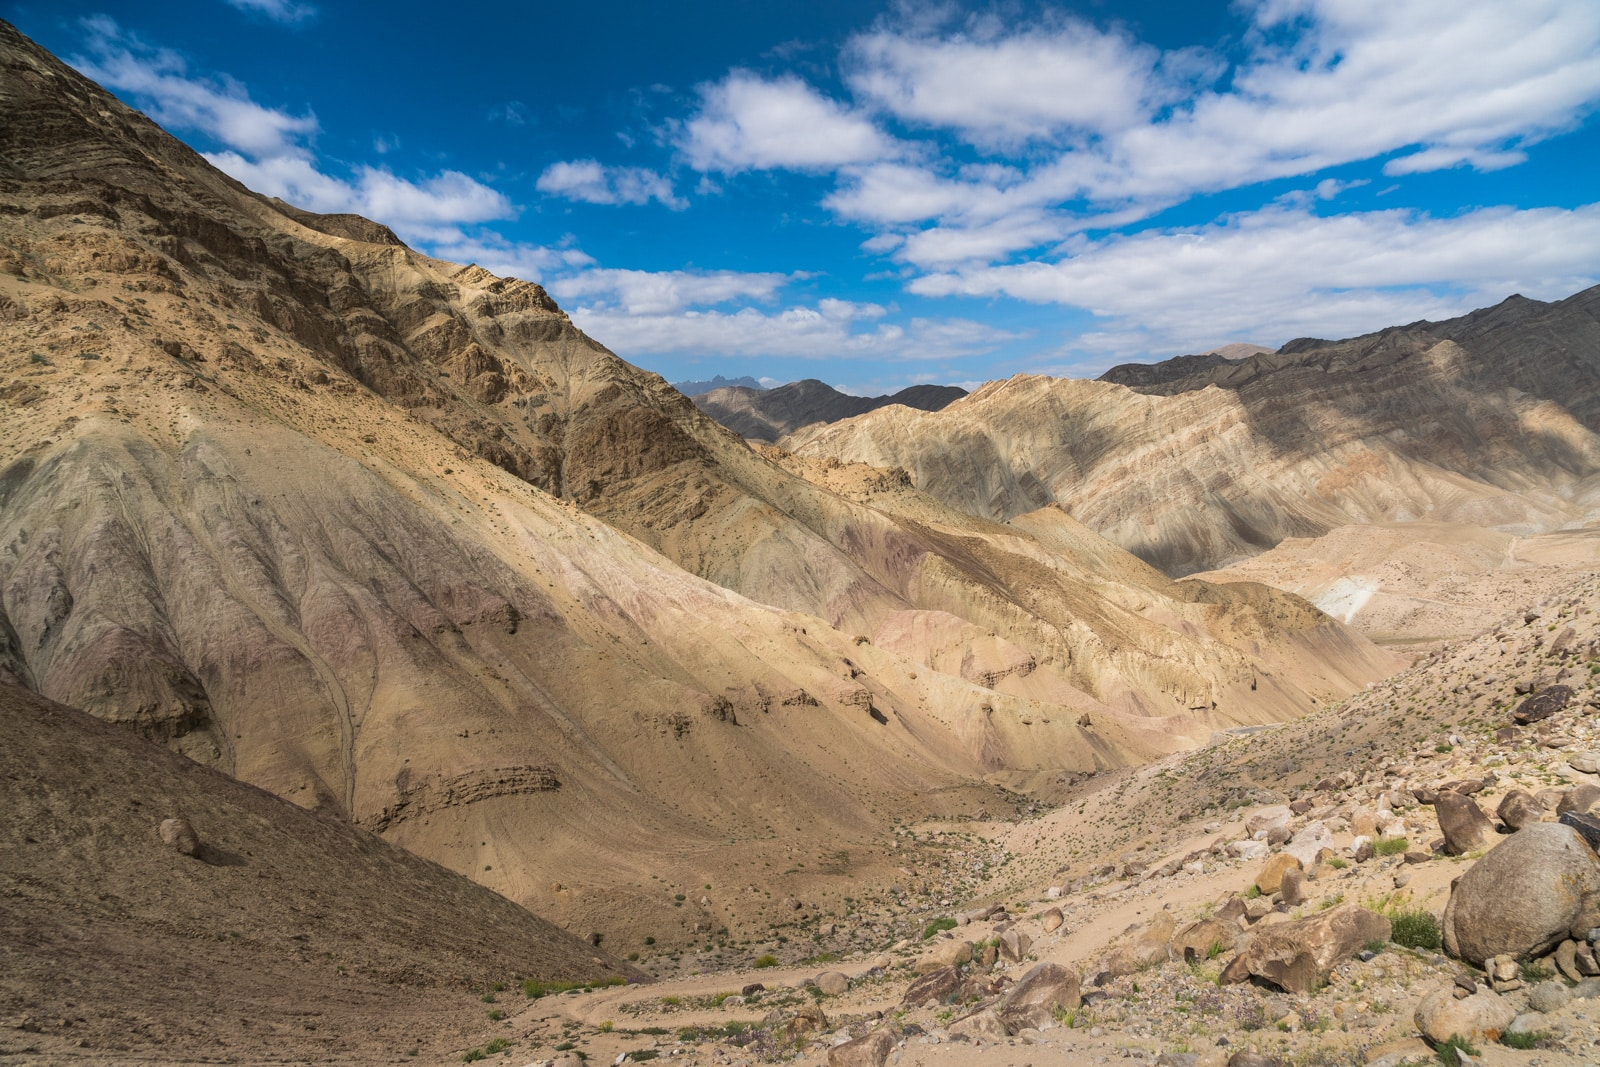 Short 3-day itinerary and guide to the Sham Valley trek in Ladakh, India - Starting area of the Sham Valley Baby trek - Lost With Purpose travel blog